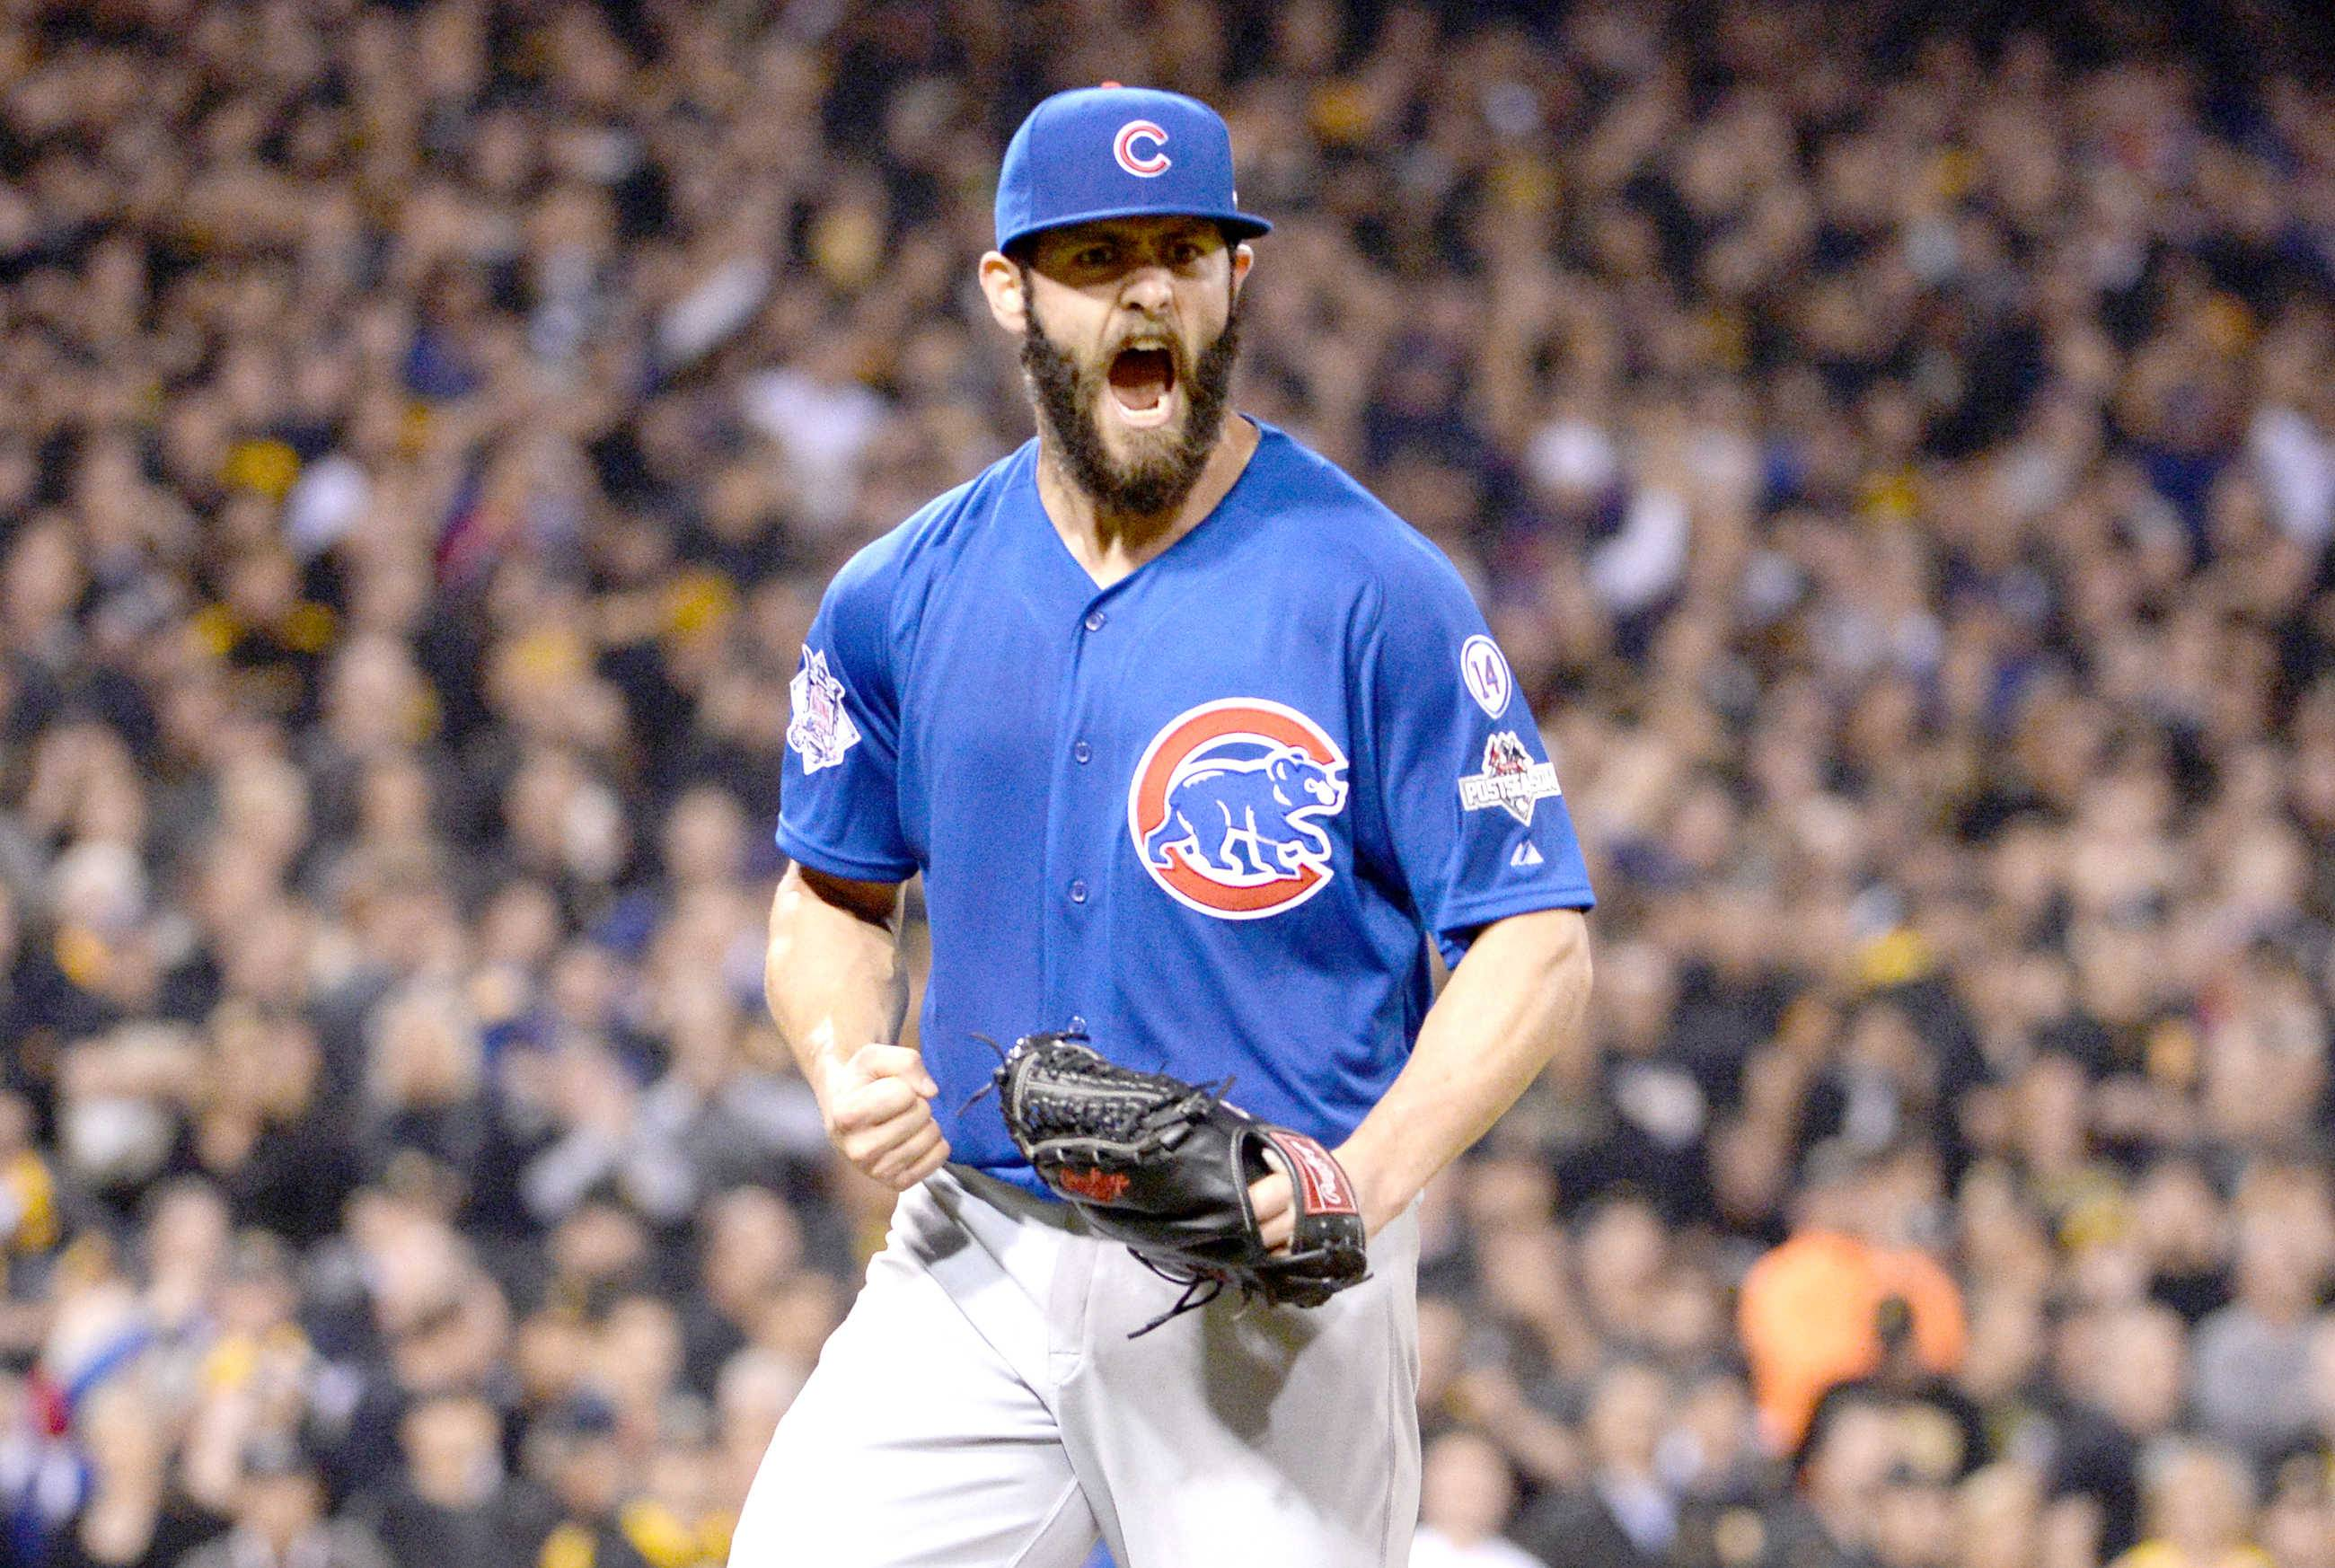 Jake Arrieta reacts after getting a key double play to end the sixth inning of last October's National League wild-card game against the Pirates at PNC Park in Pittsburgh.